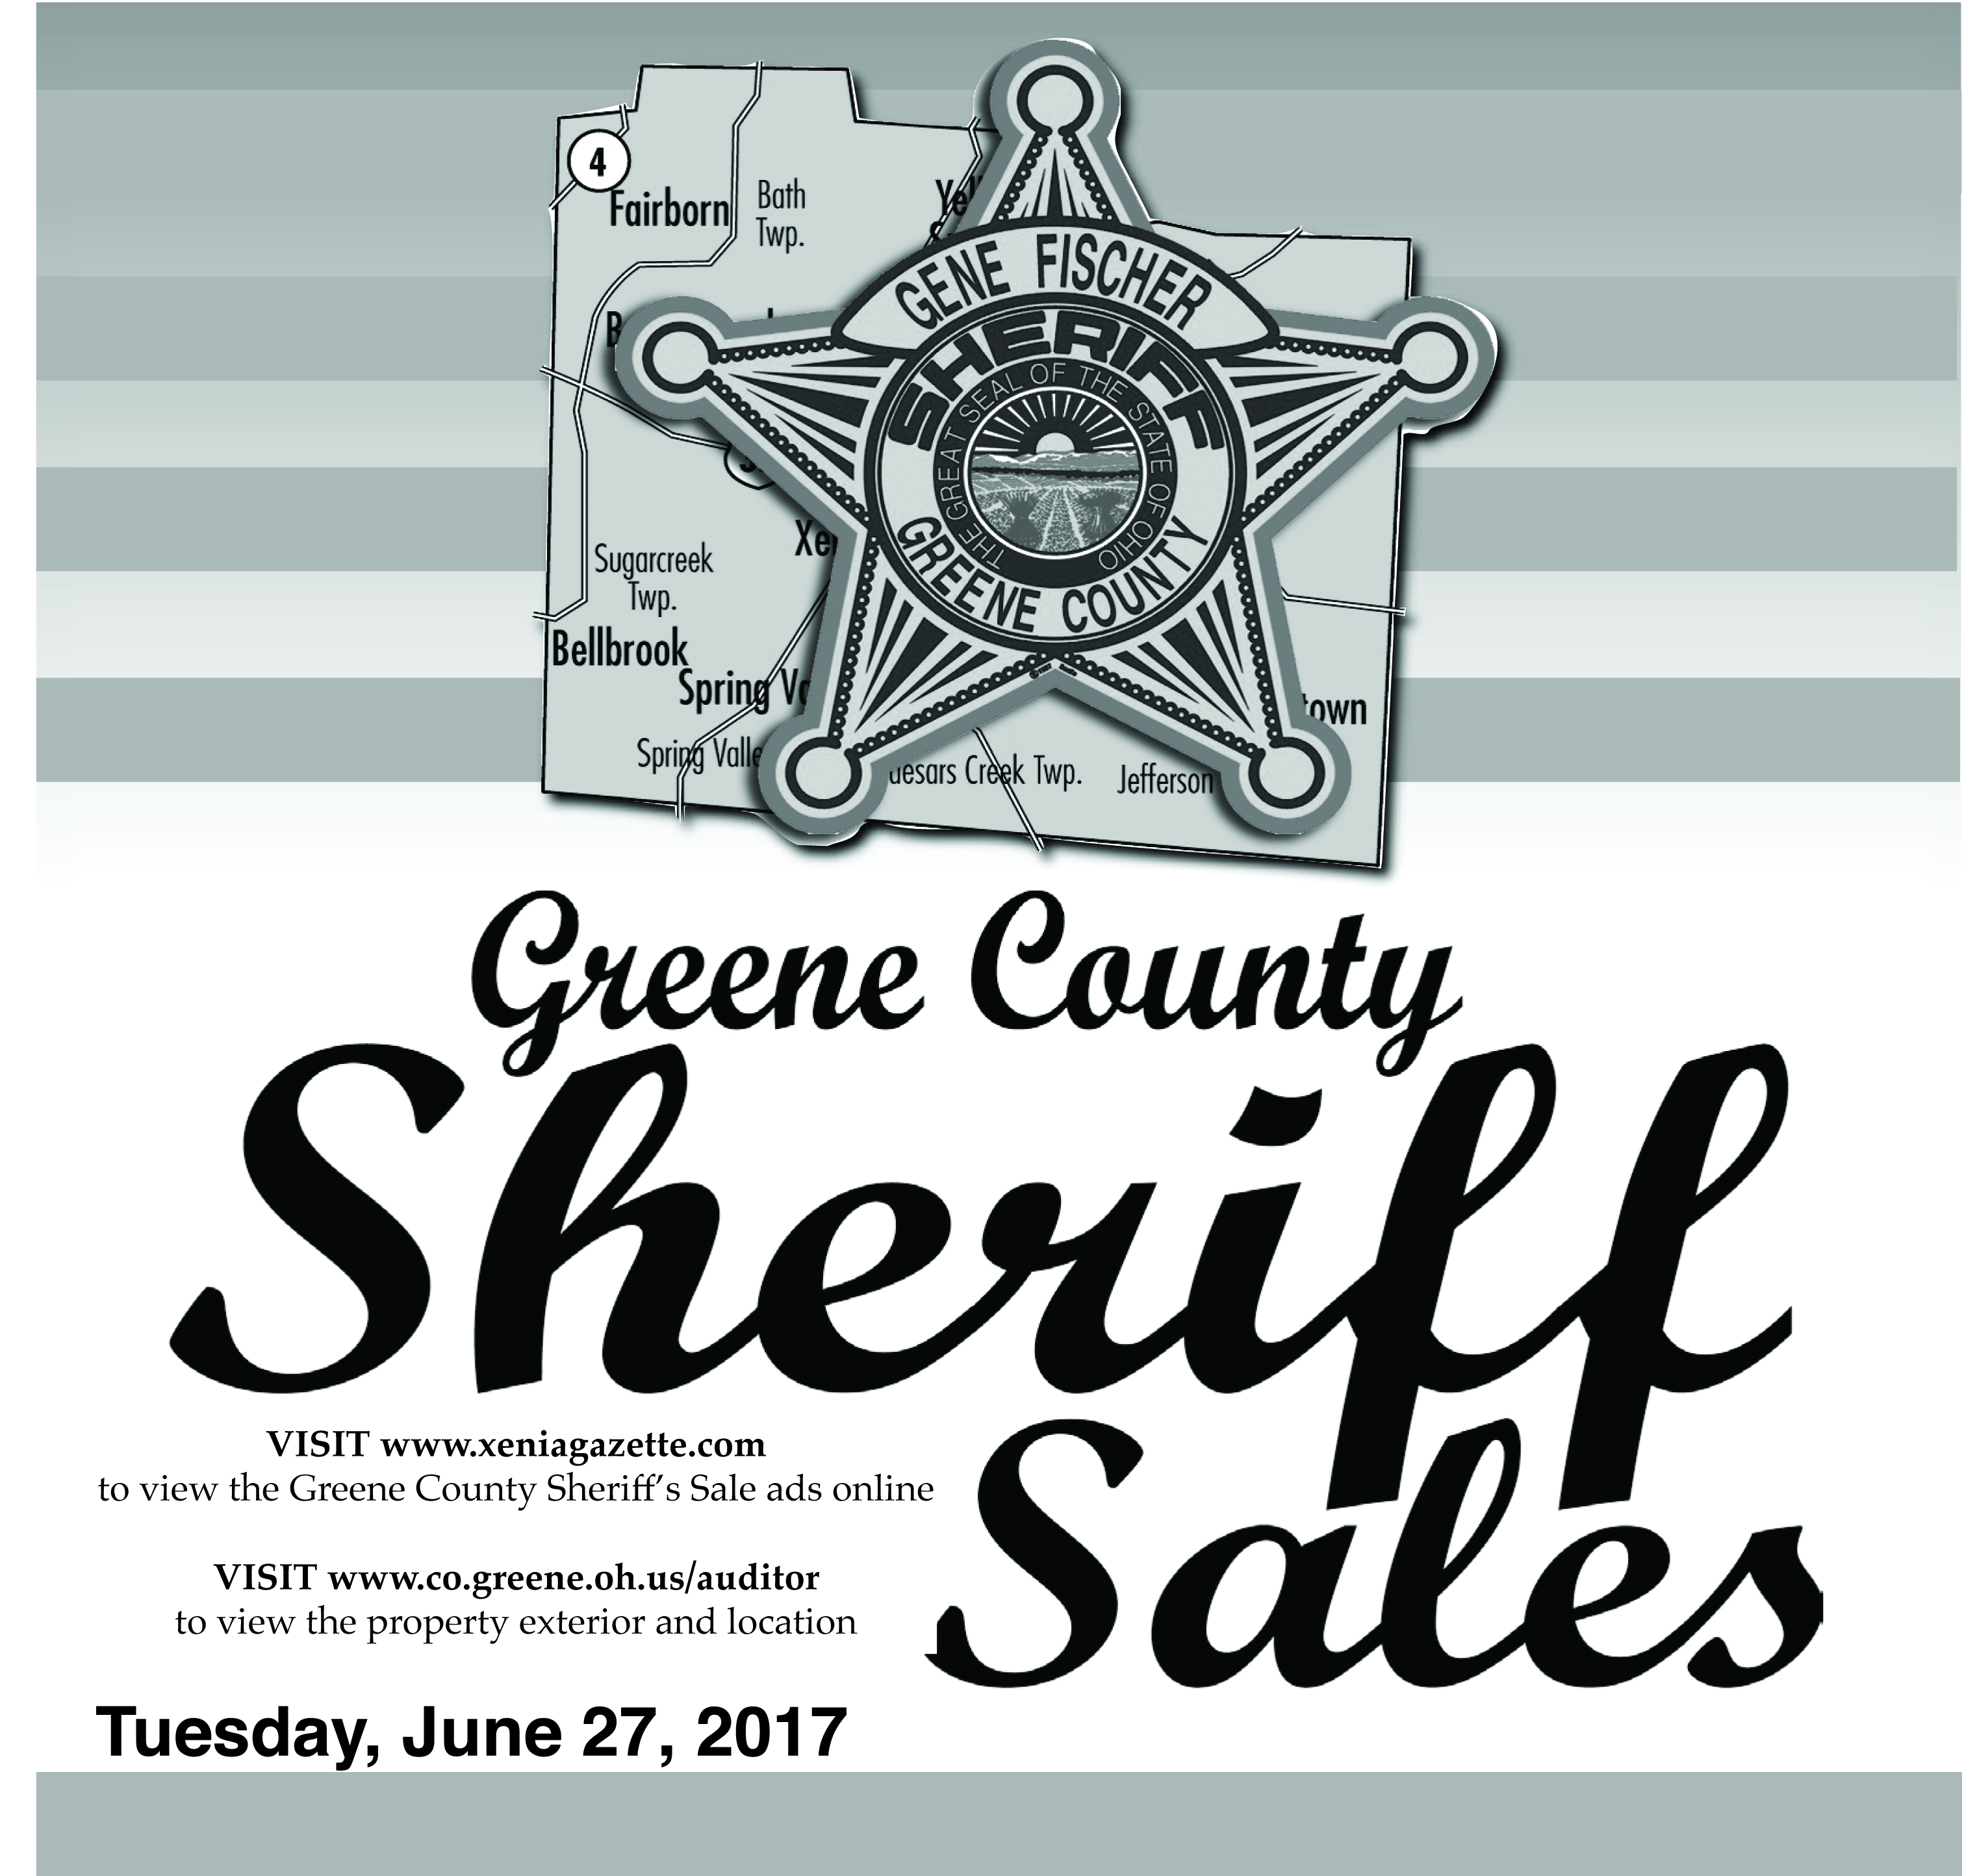 Sheriff Sale: June 27, 2017